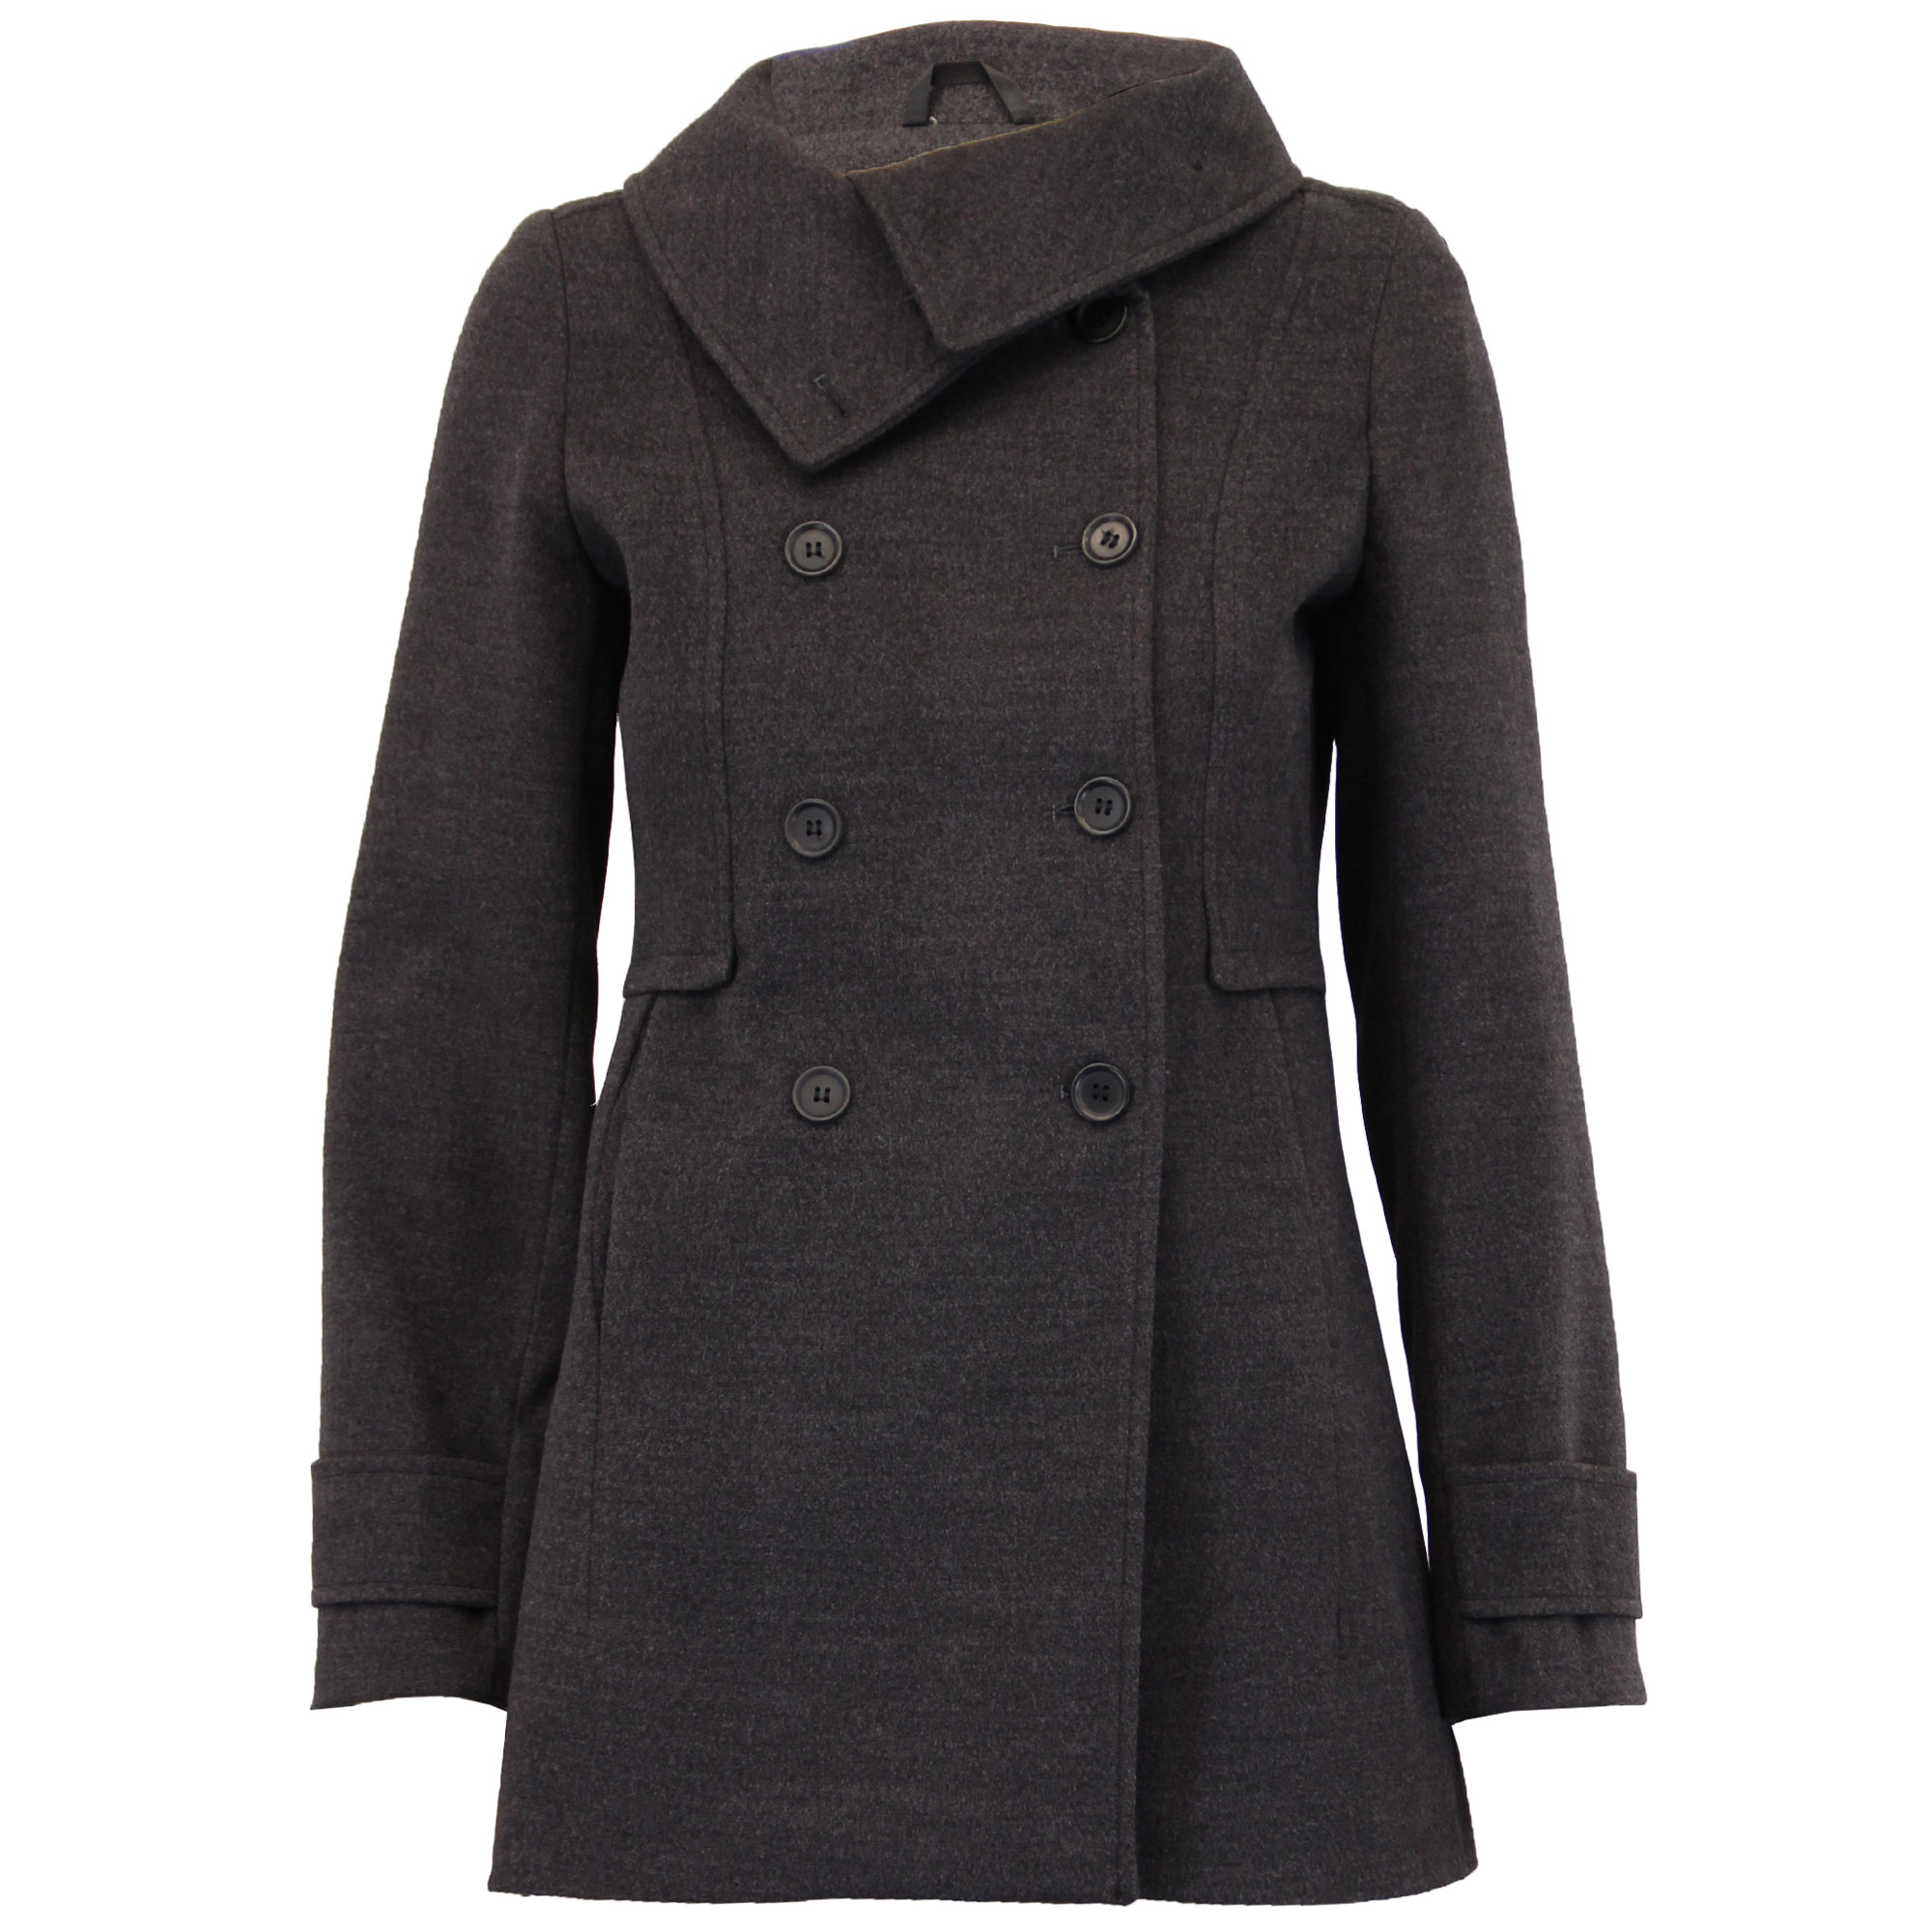 Shop the latest styles of Womens Double Breasted Coats at Macys. Check out our designer collection of chic coats including peacoats, trench coats, puffer coats and more!